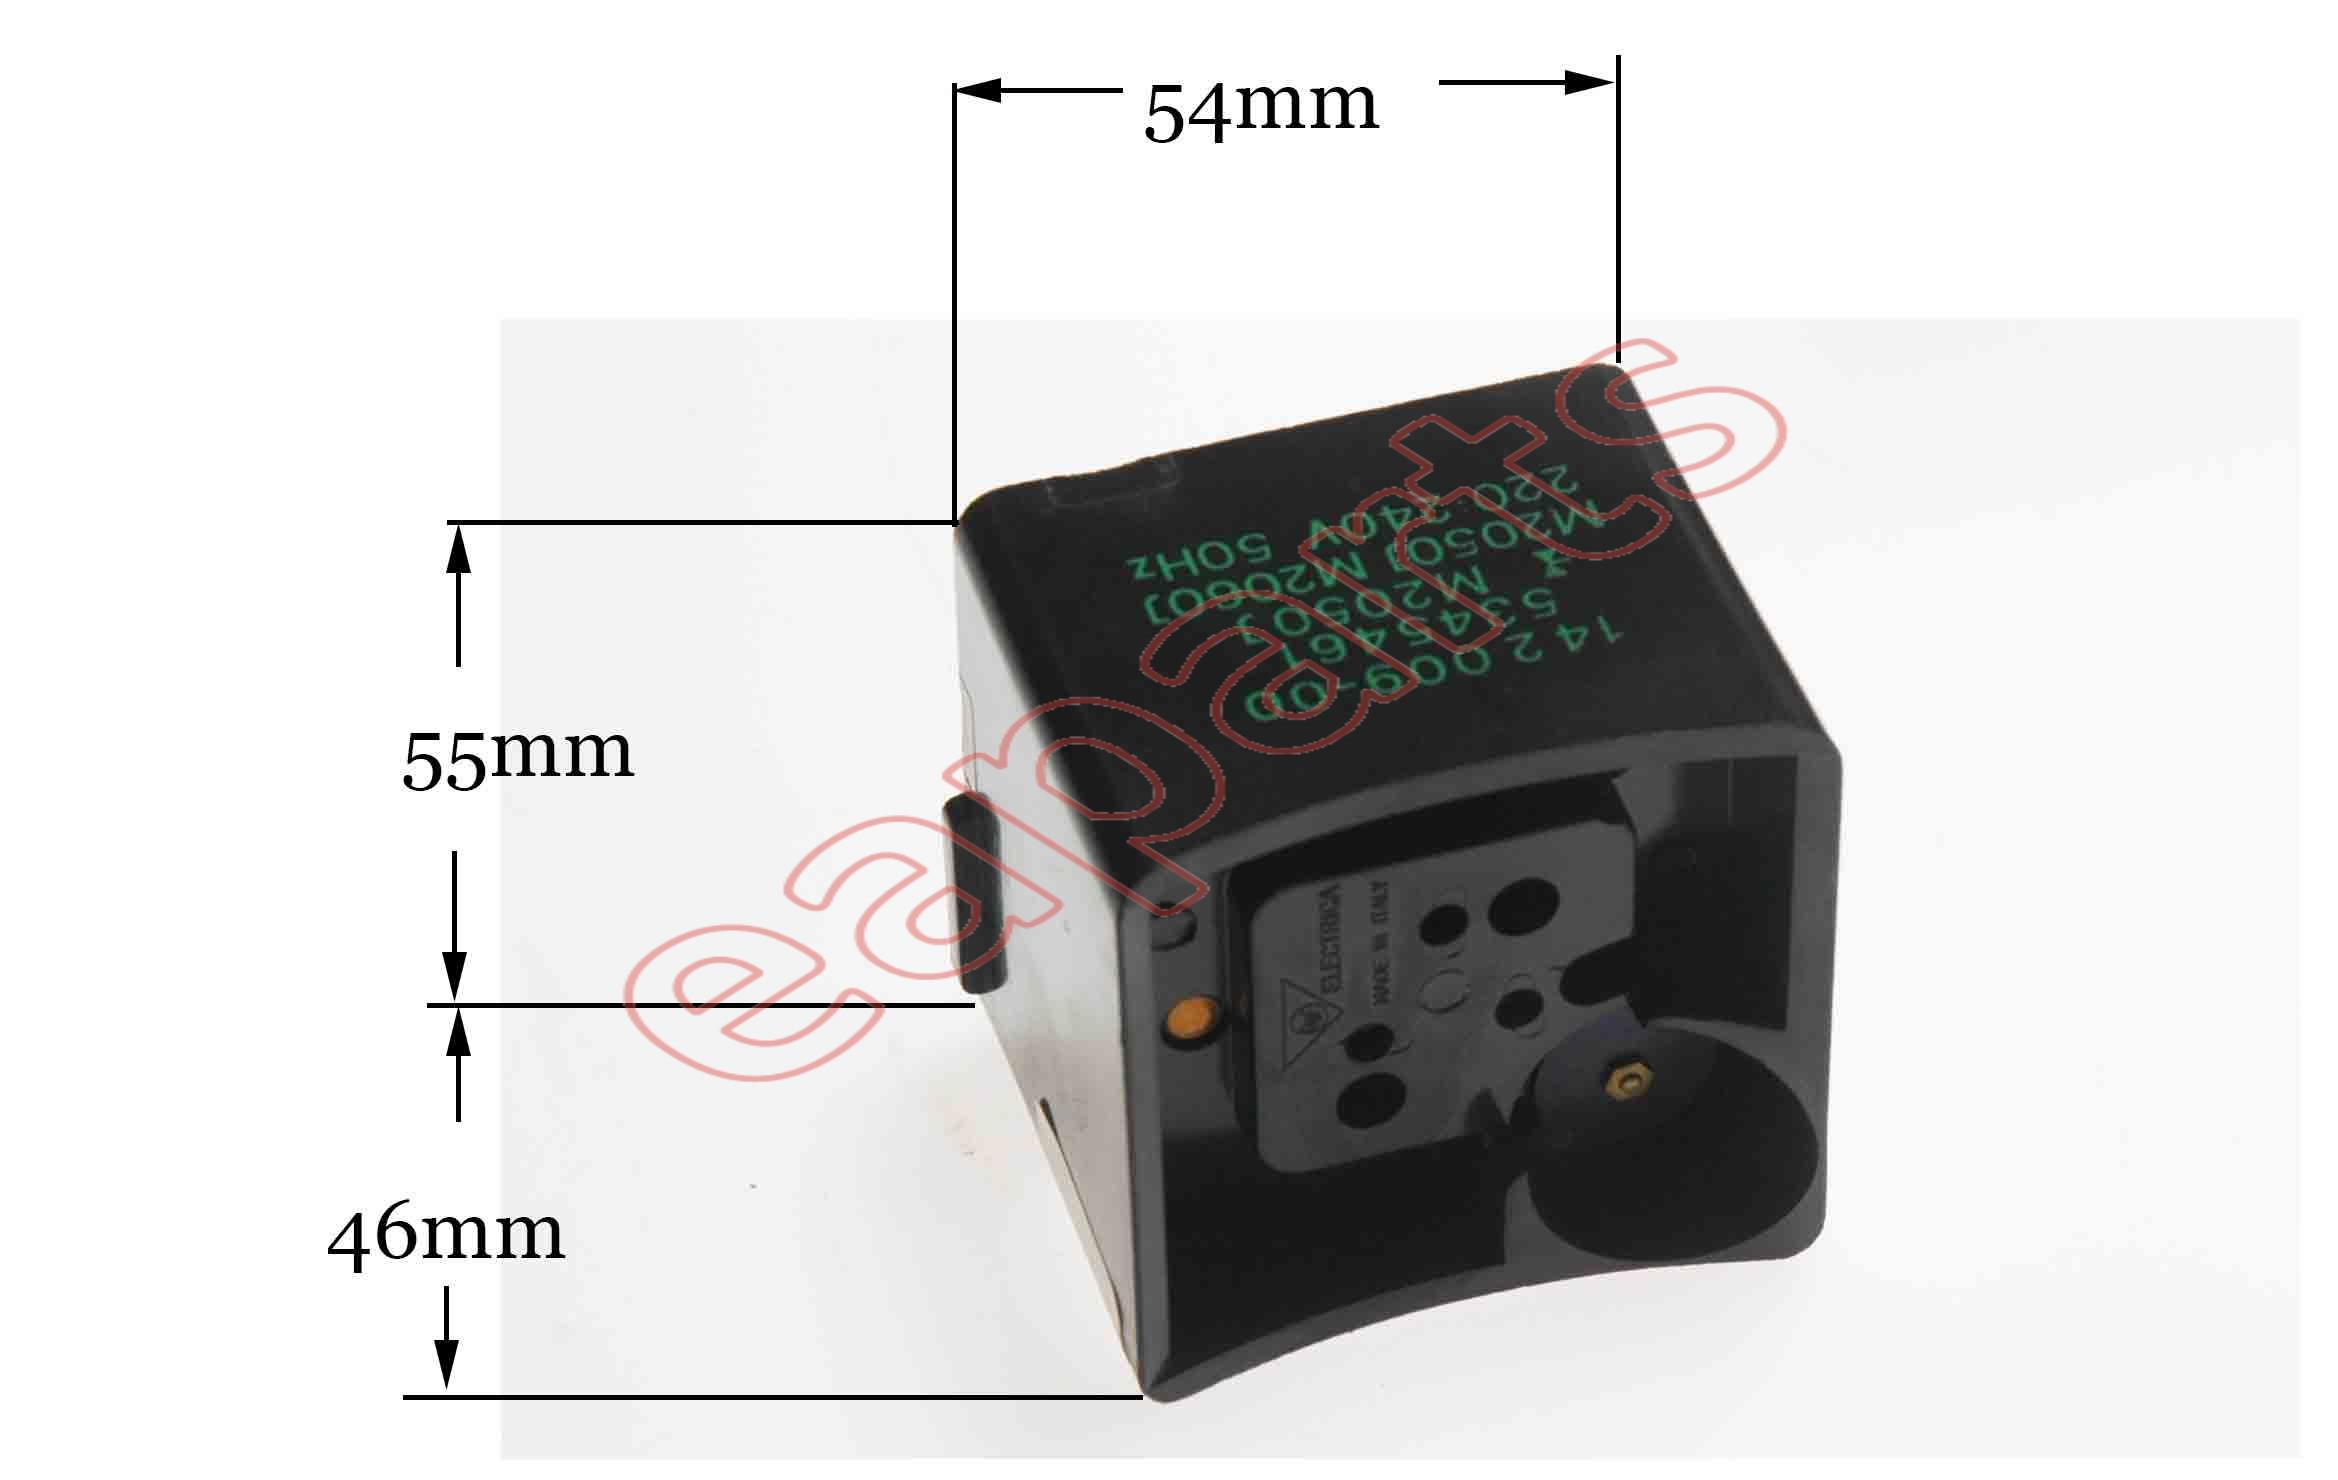 Relay With Thermic Compressor M2050 For Switch In Refrigerators Refrigerator Universal Discontinued